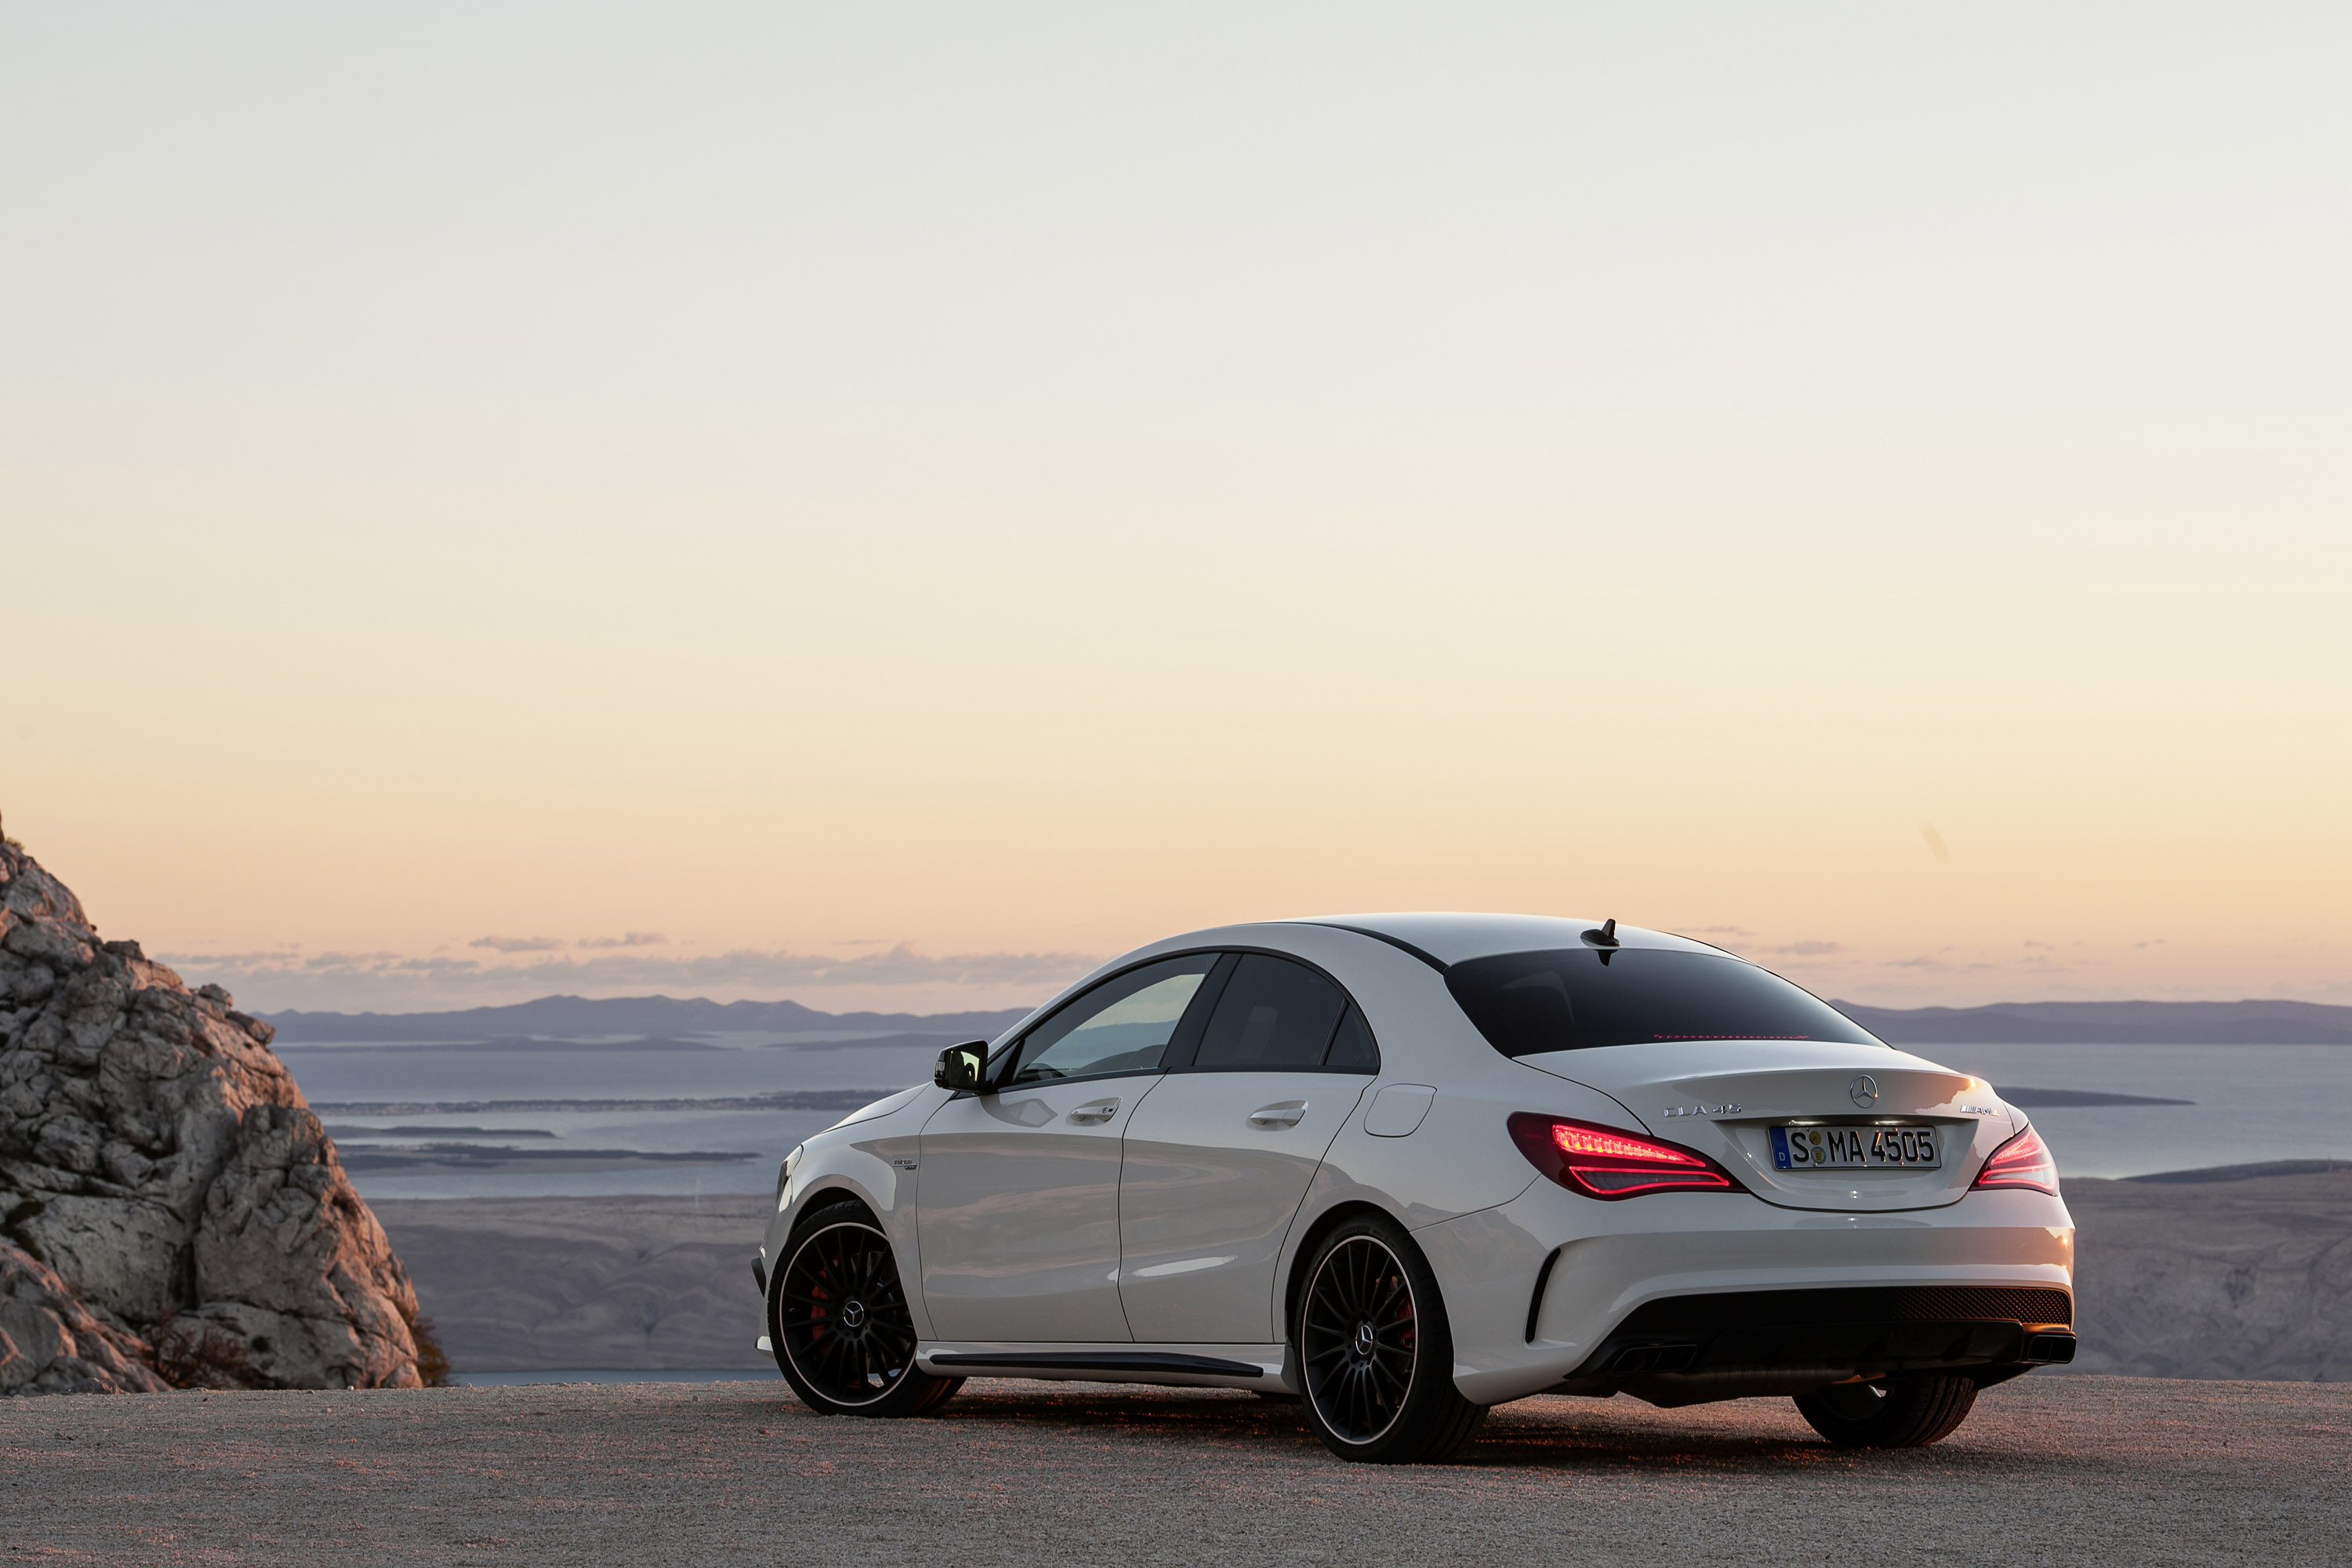 2014 Mercedes-Benz CLA 45 AMG - US Price $47,450